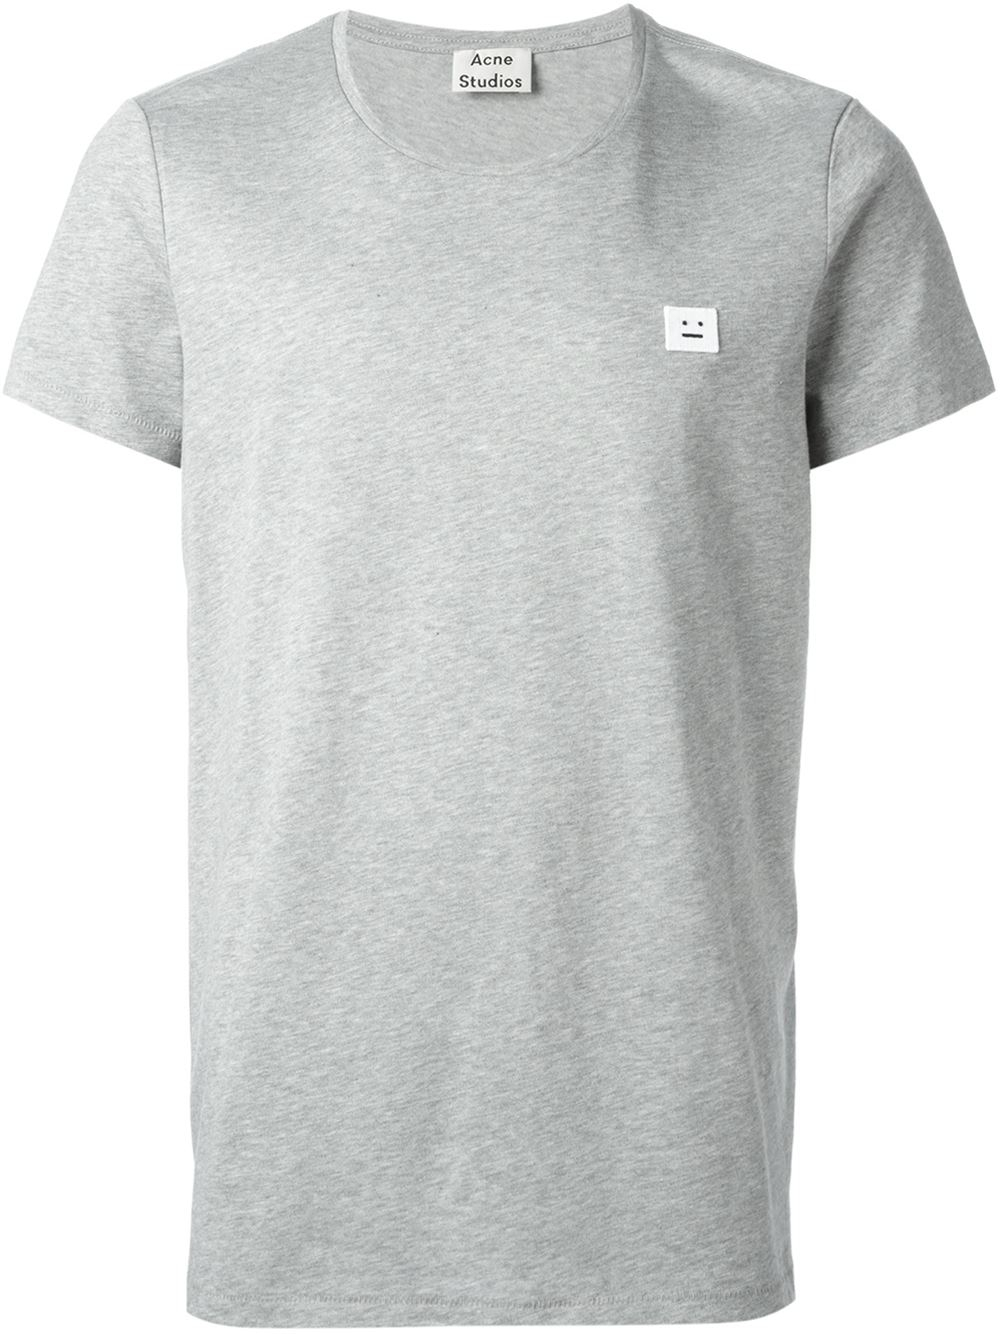 acne studios 39 standard face 39 t shirt in gray for men lyst